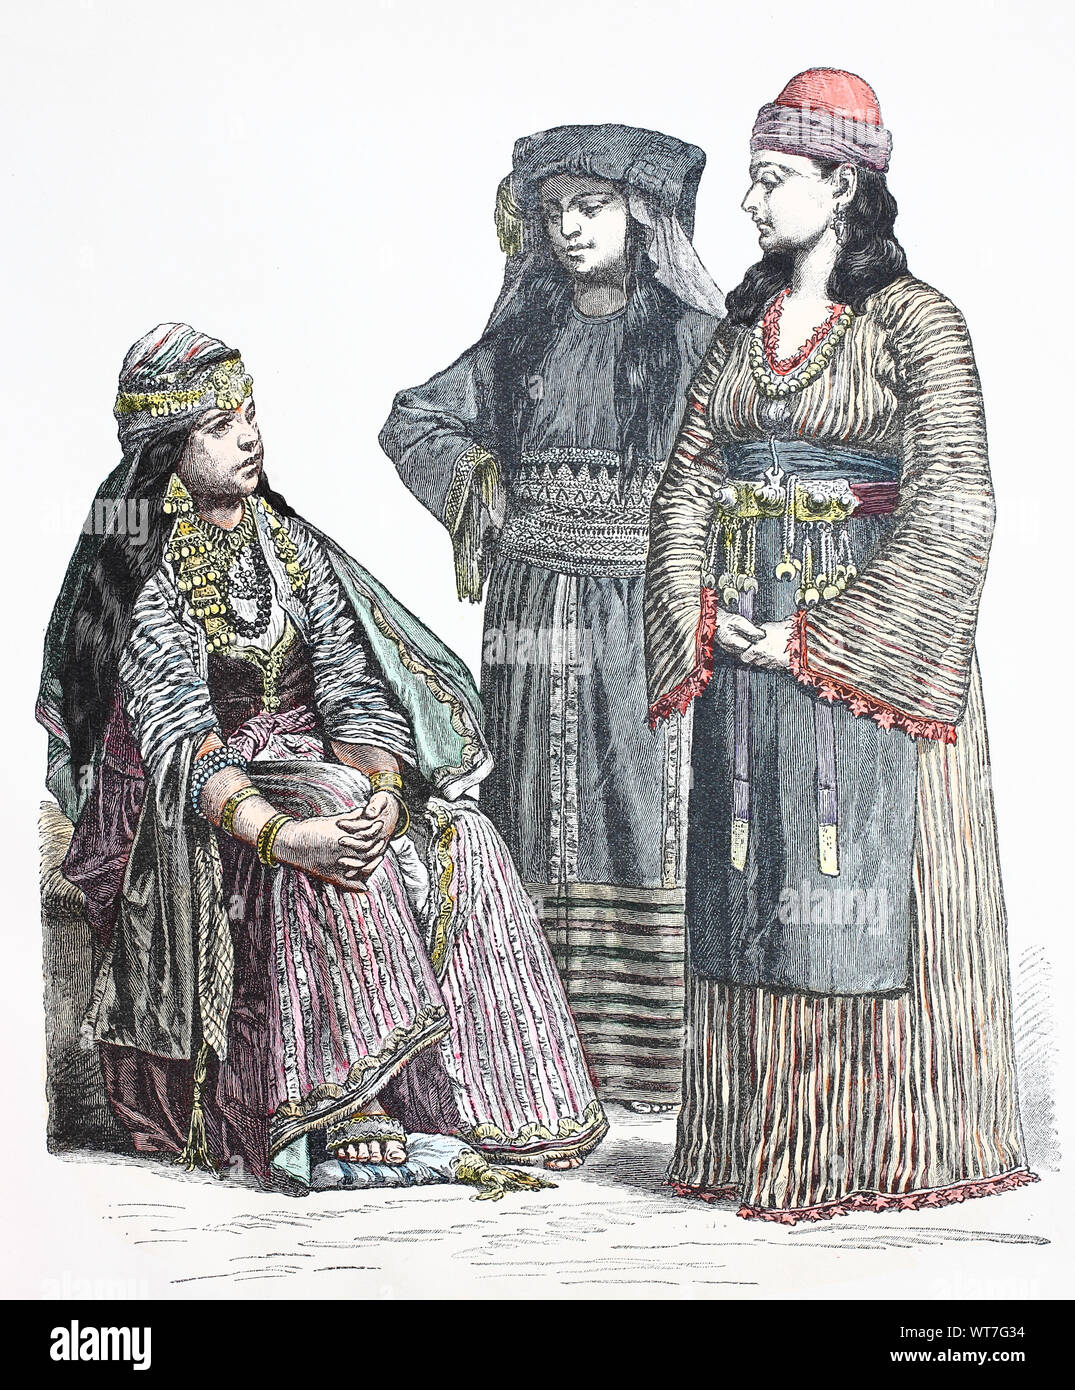 National costume, clothes, history of the costumes, woman from Damascus, Moslem woman from Mecca, Fellahfrau from the surroundings of Damascus, Volkstracht, Kleidung, Geschichte der Kostüme, Frau aus Damaskus, moslemische Frau aus Mekka, Fellahfrau aus der Umgebung von Damaskus Stock Photo